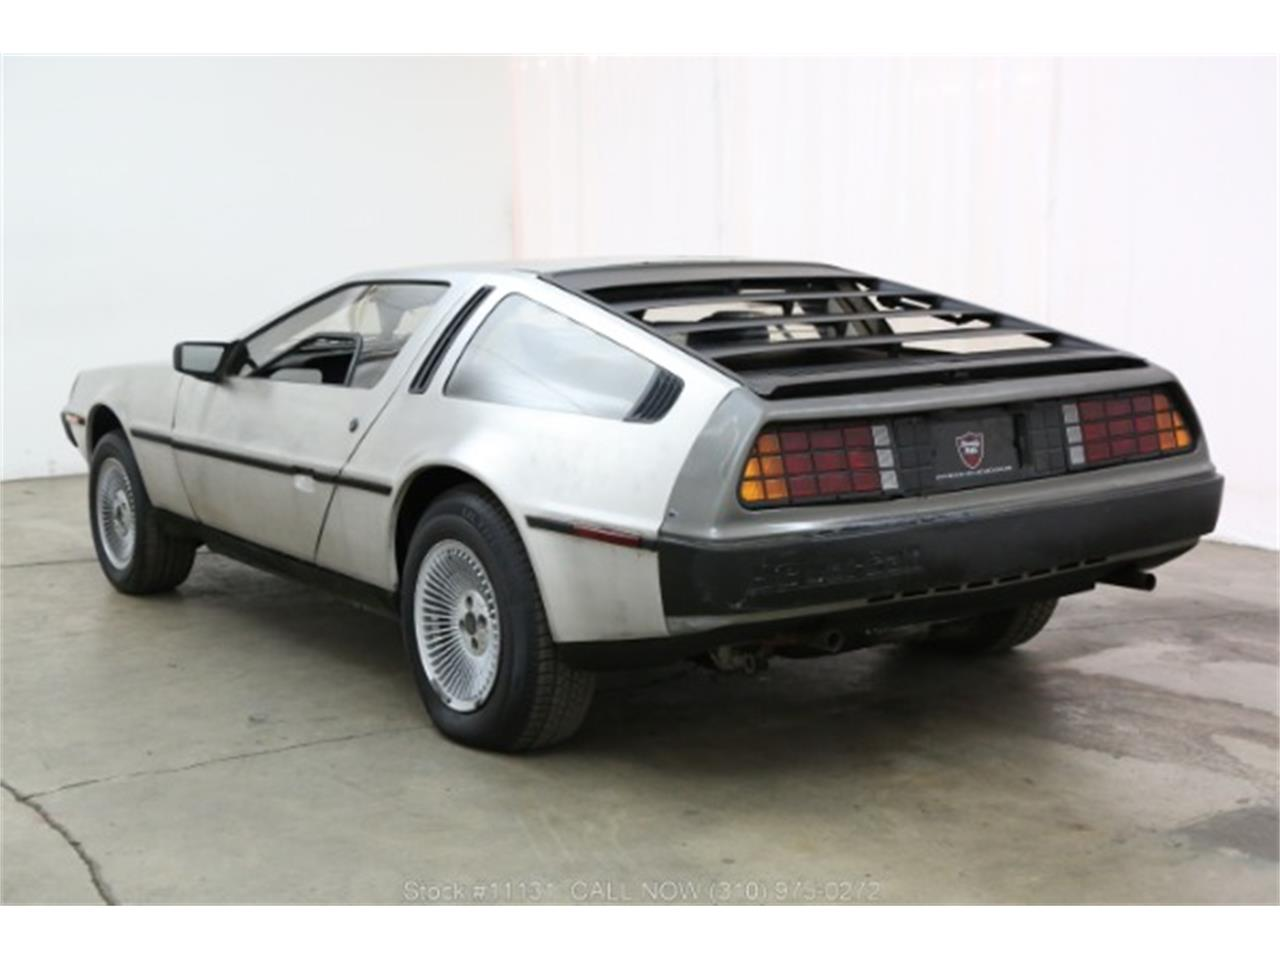 Large Picture of '81 DMC-12 located in Beverly Hills California - $19,500.00 - QNPP